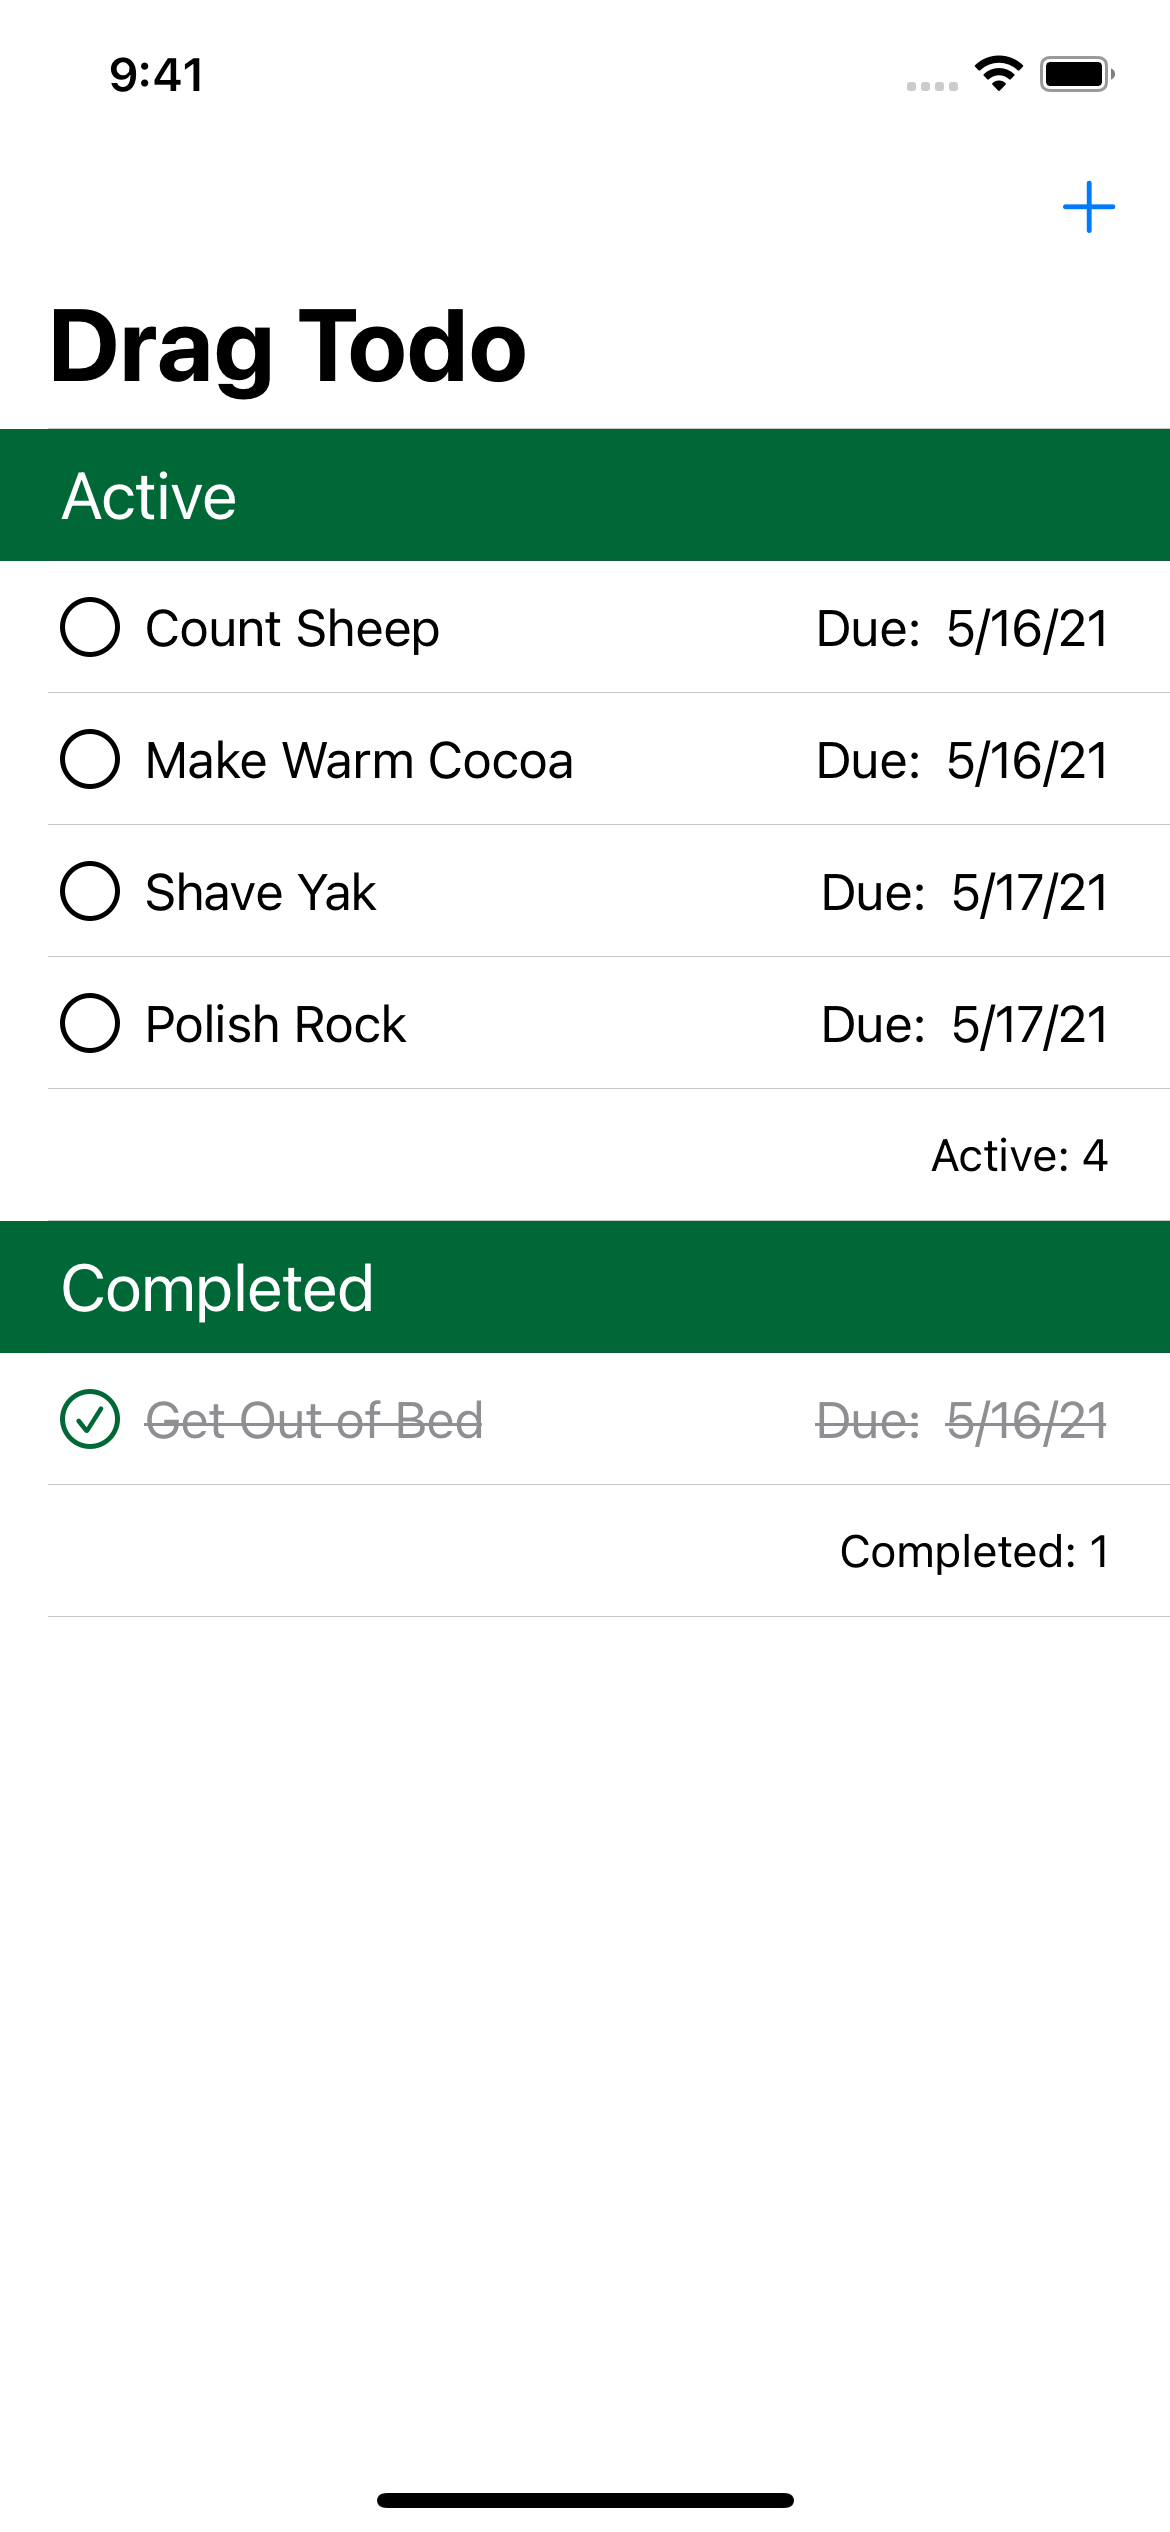 Drag Todo app after building and running the sample project